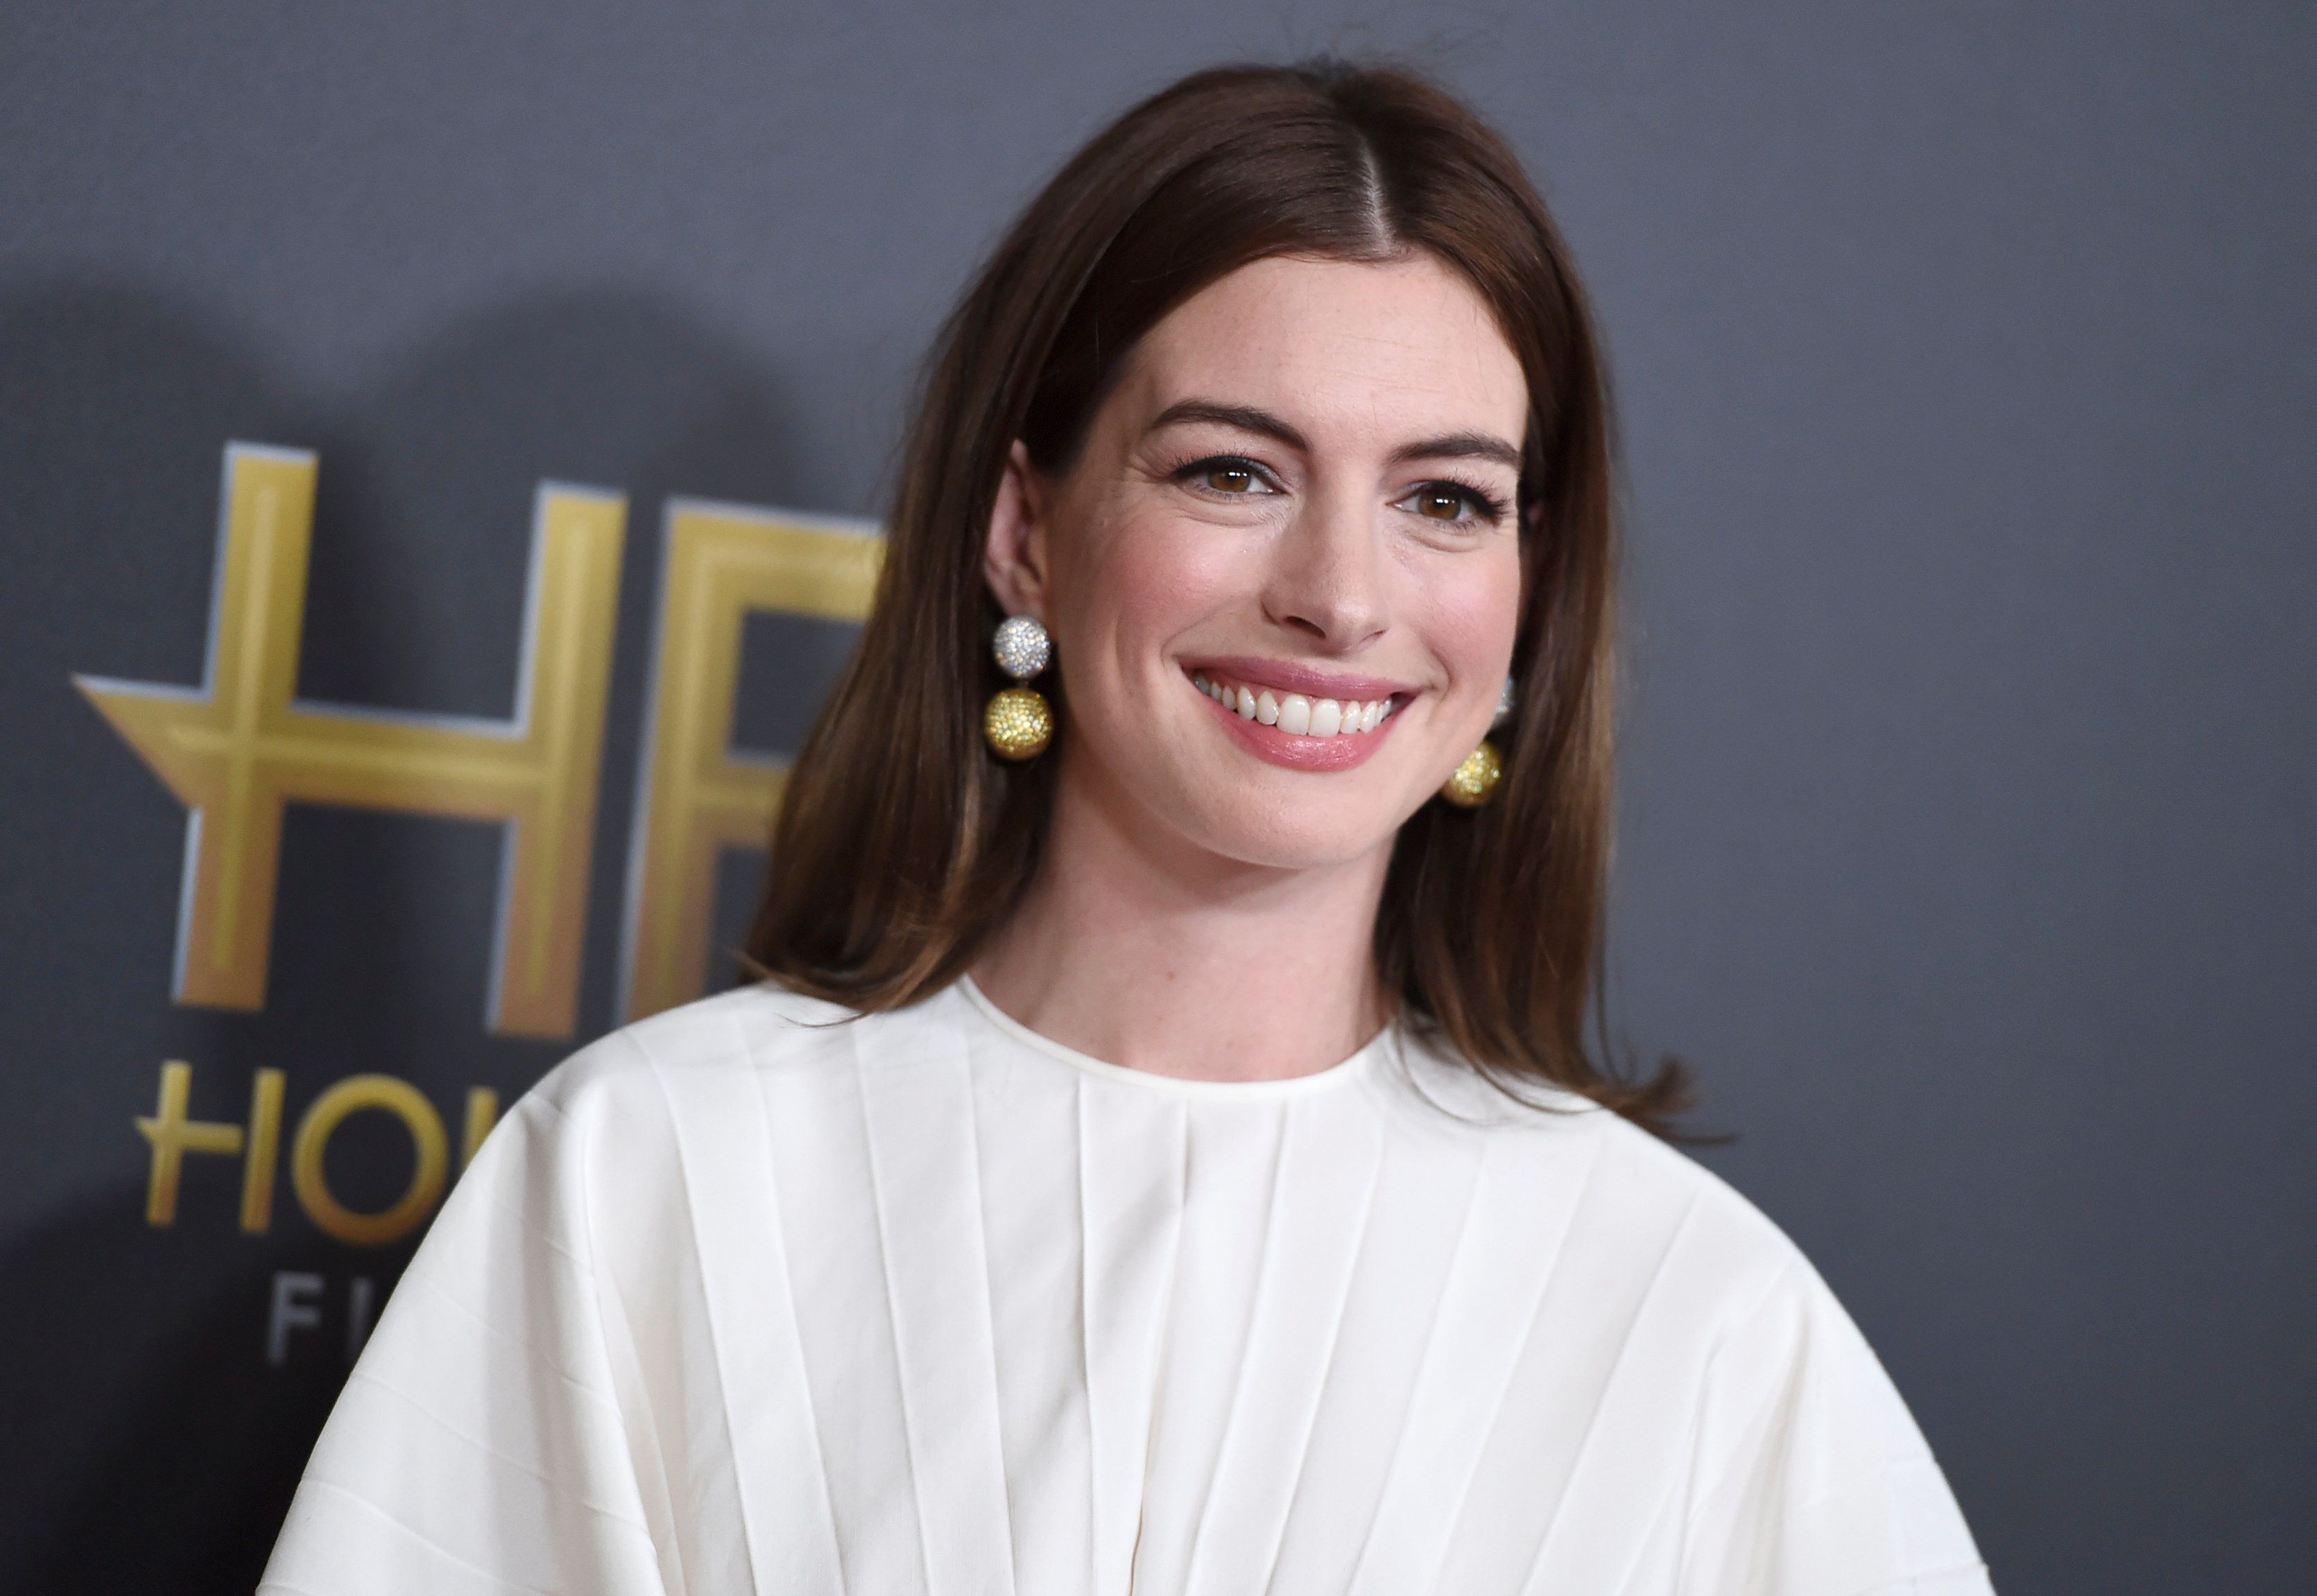 Anne Hathaway arrives at the Hollywood Film Awards in November 2018 at the Beverly Hilton Hotel. The actress said she plans t